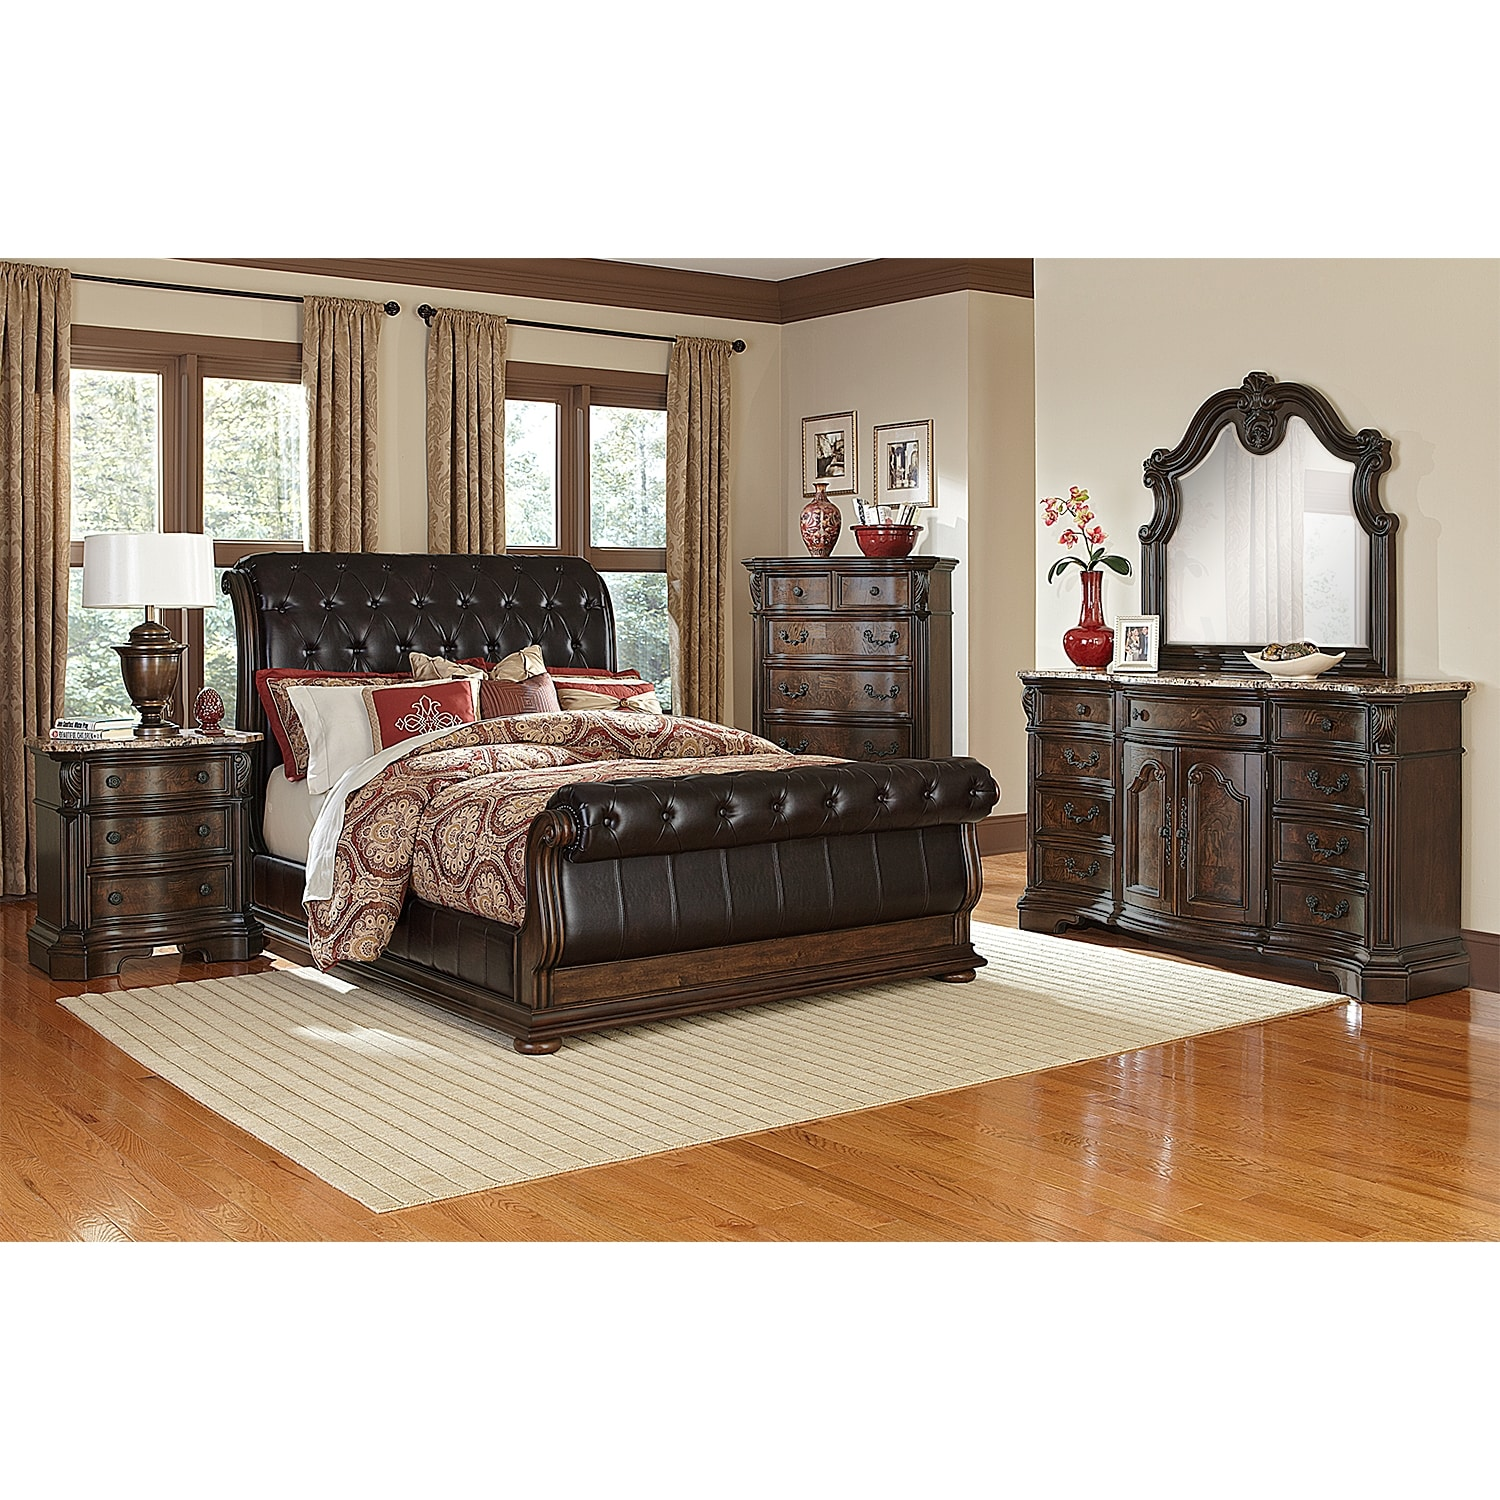 amazing value city bedroom furniture